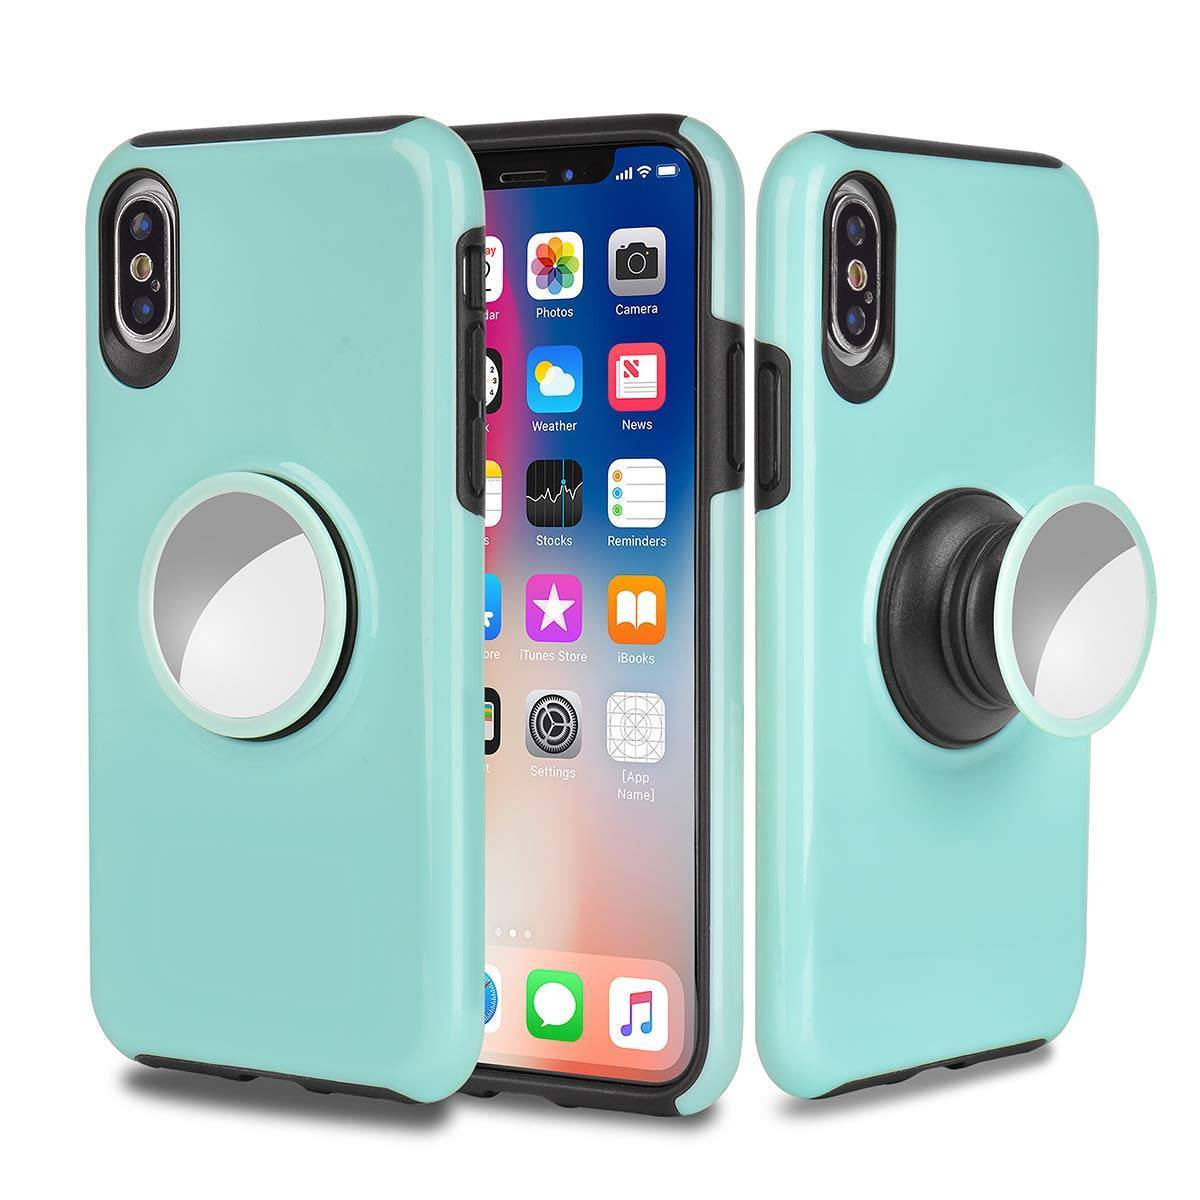 2 in 1 Hybrid Hard PC TPU iPhone X Case with Pop Socket